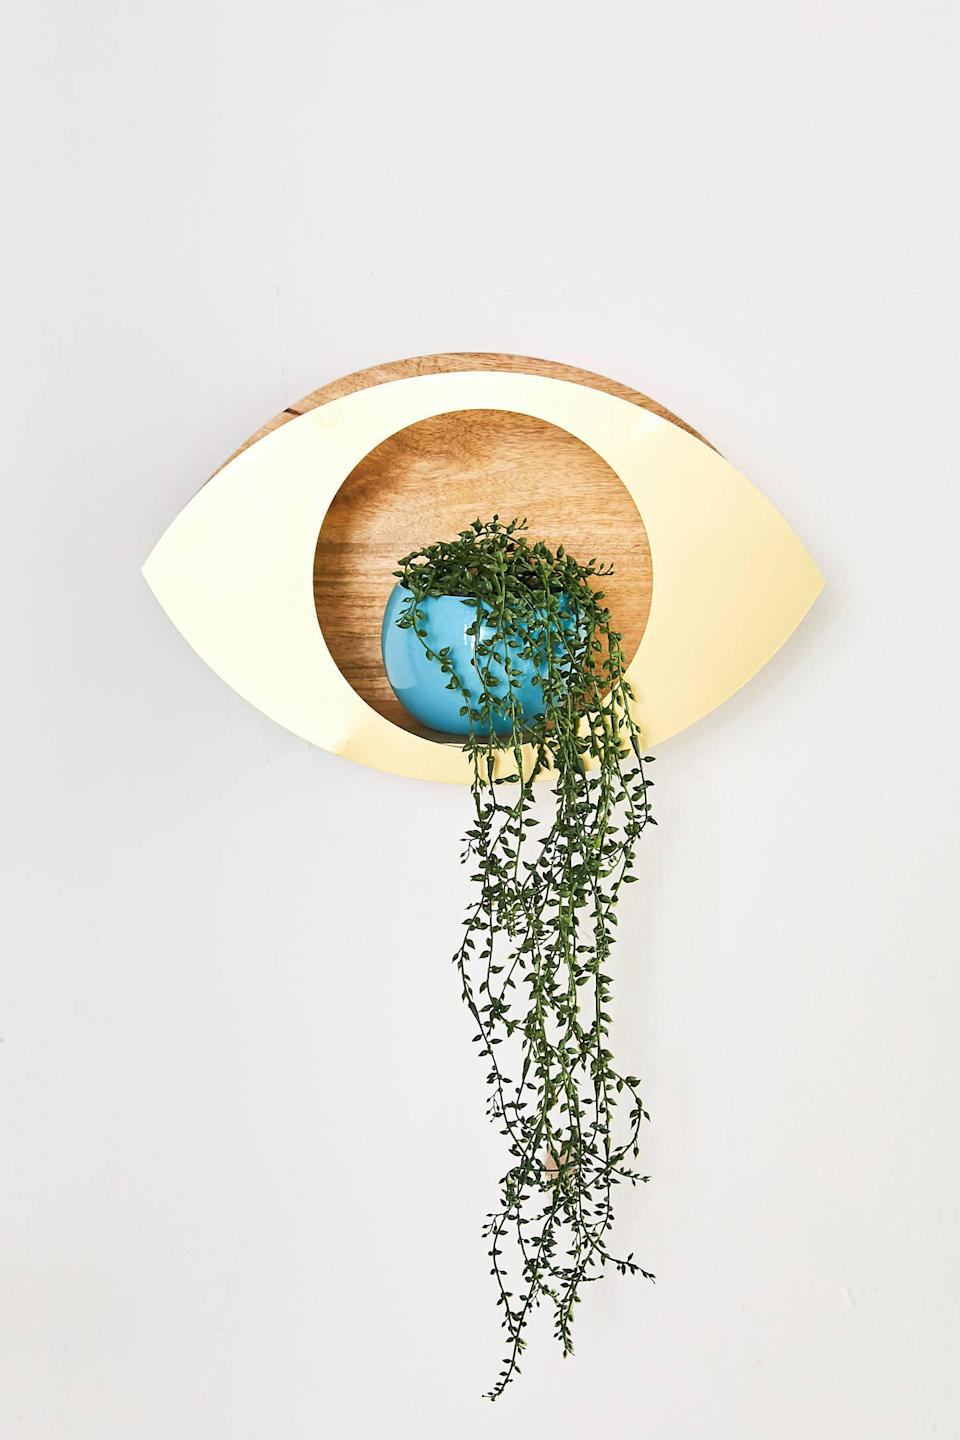 "<br> <br> <strong>Urban Outfitters</strong> Eye Plant Wall Shelf, $, available at <a href=""https://go.skimresources.com/?id=30283X879131&url=https%3A%2F%2Fwww.urbanoutfitters.com%2Fshop%2Feye-plant-wall-shelf"" rel=""nofollow noopener"" target=""_blank"" data-ylk=""slk:Urban Outfitters"" class=""link rapid-noclick-resp"">Urban Outfitters</a>"